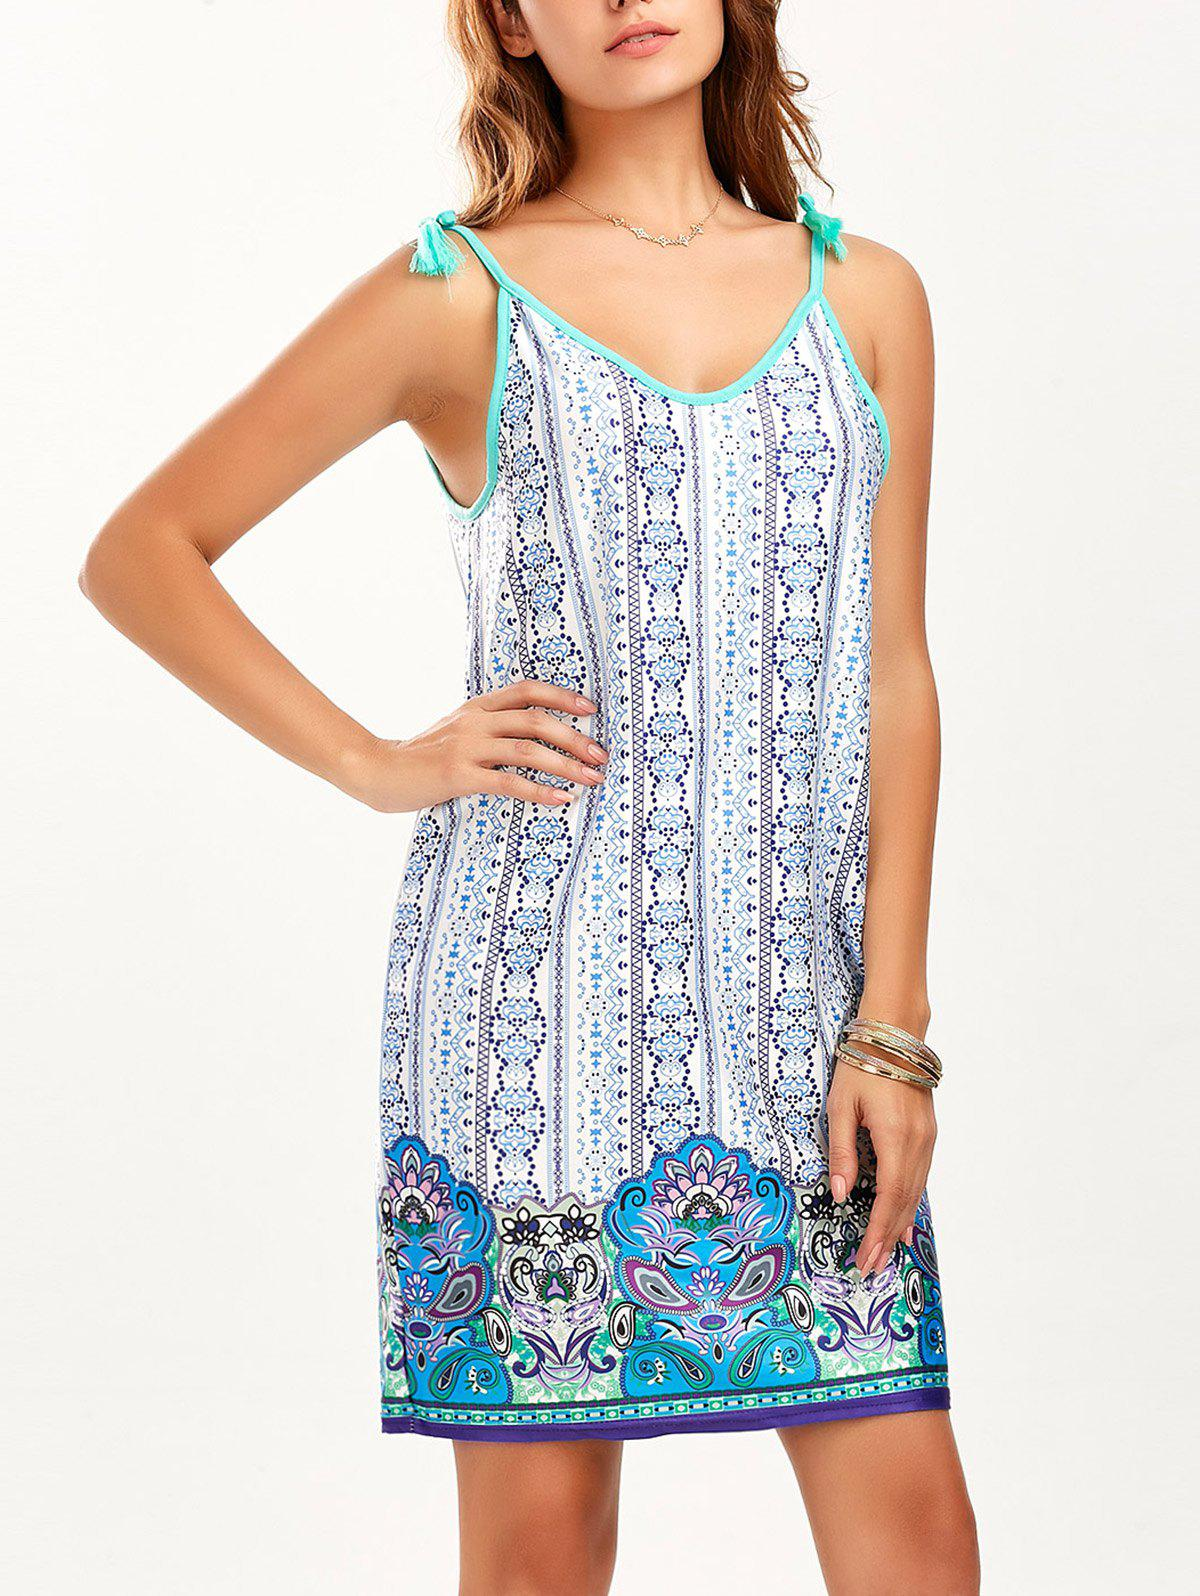 Tassel Printed Mini Summer Dress - BLUE S